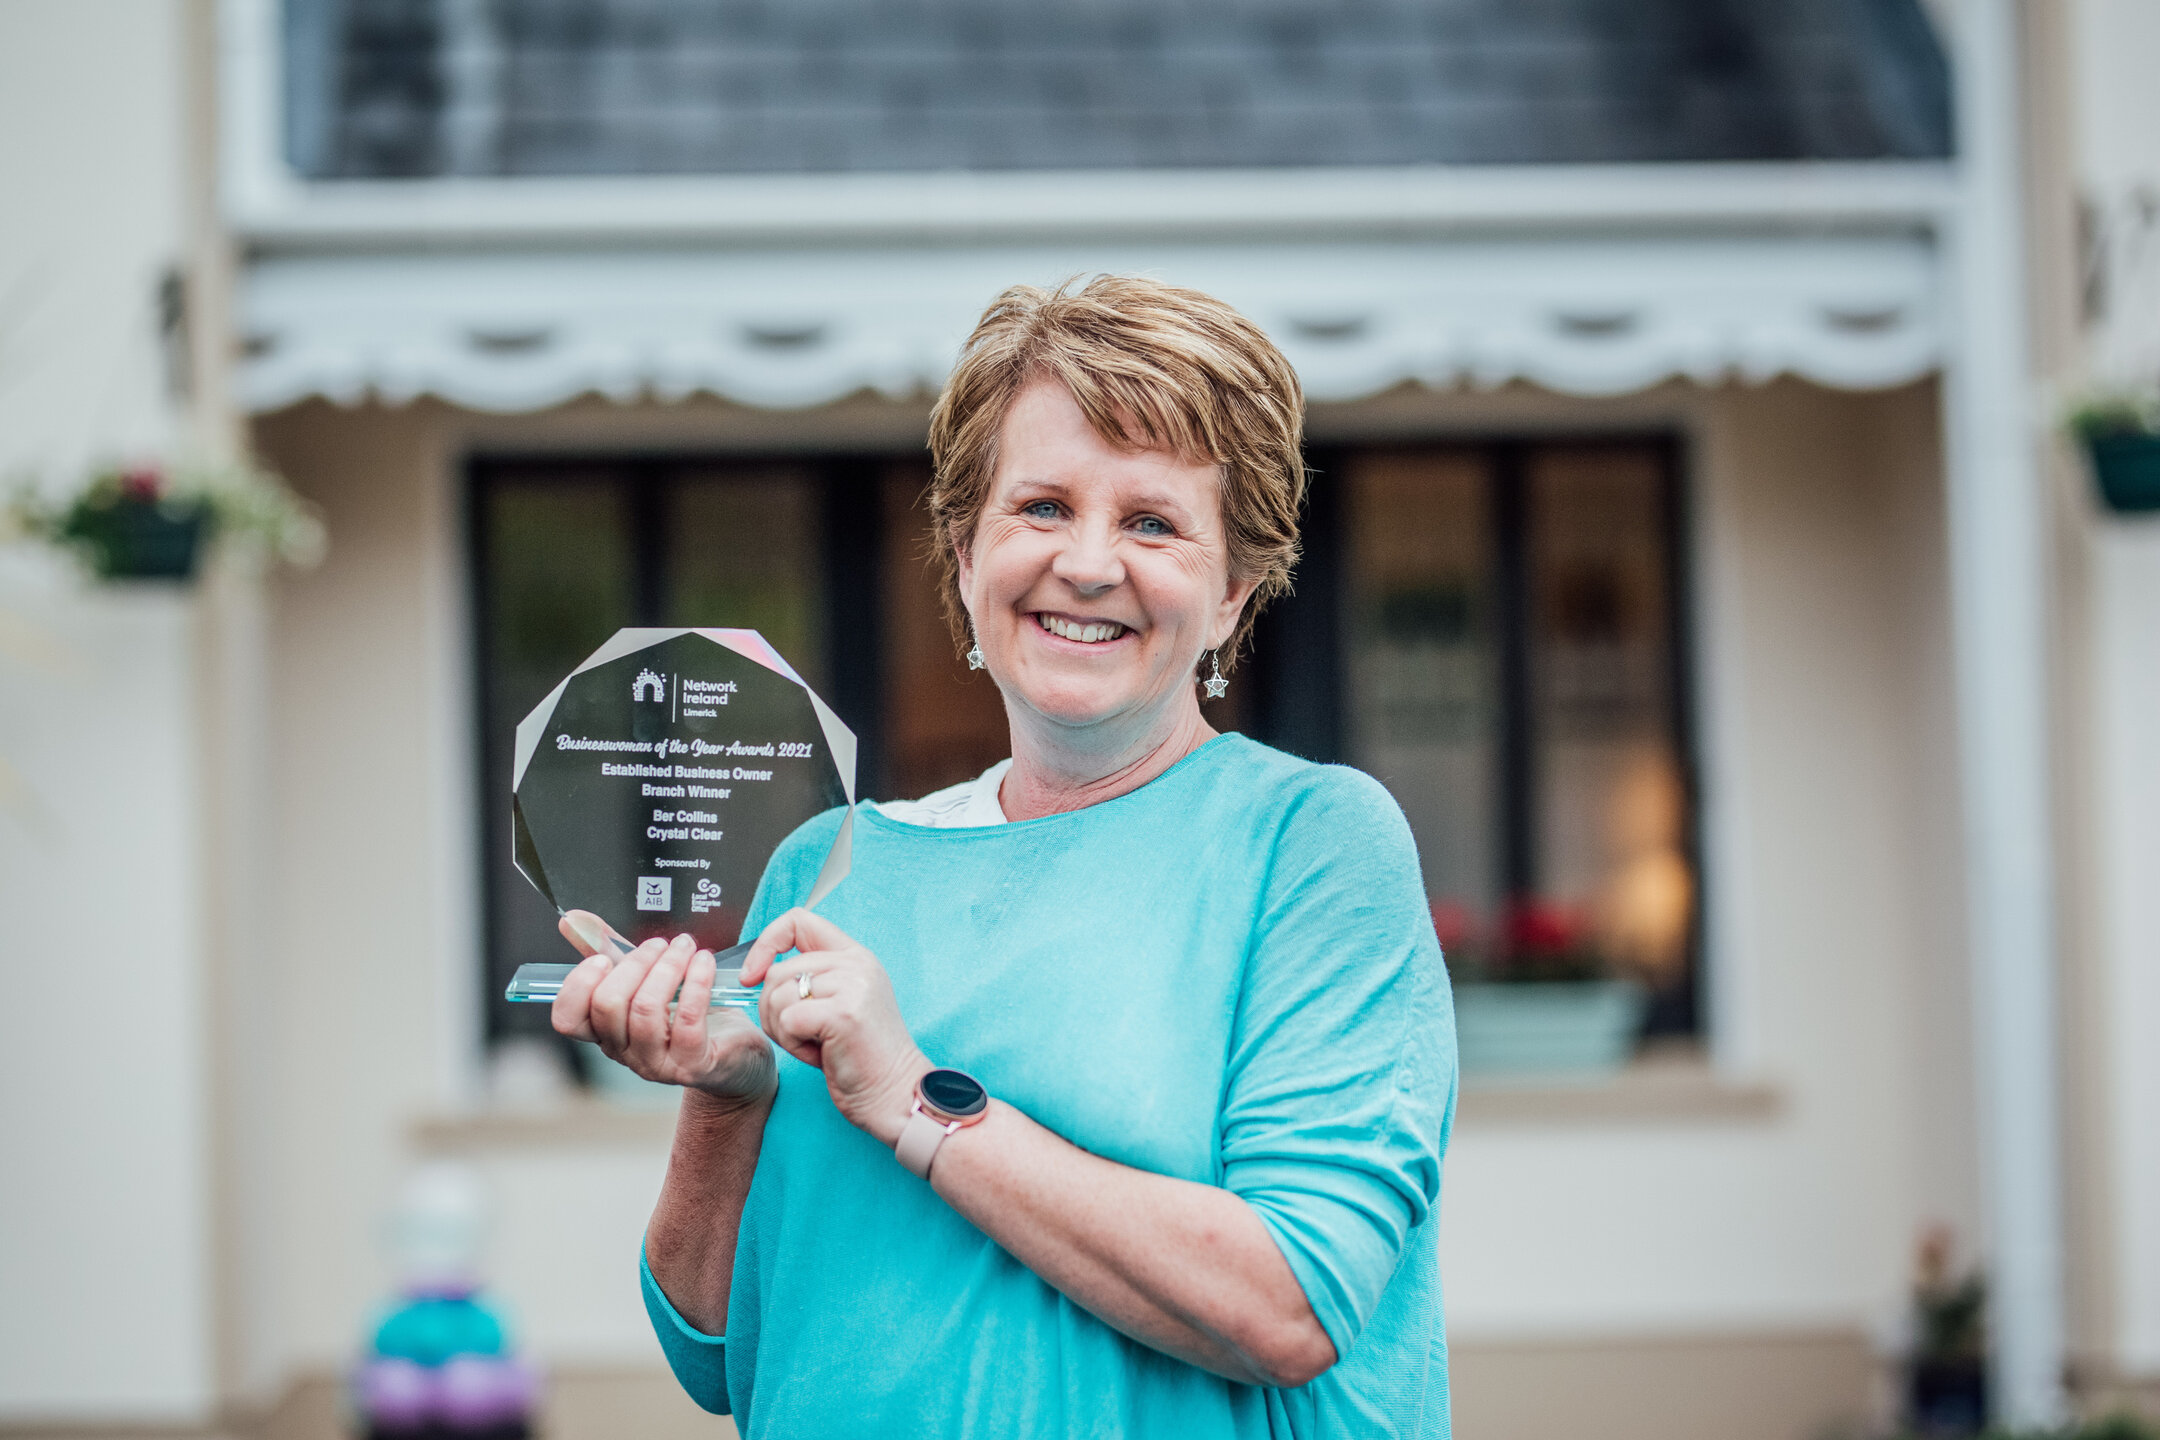 2021 Limerick Businesswoman of the Year